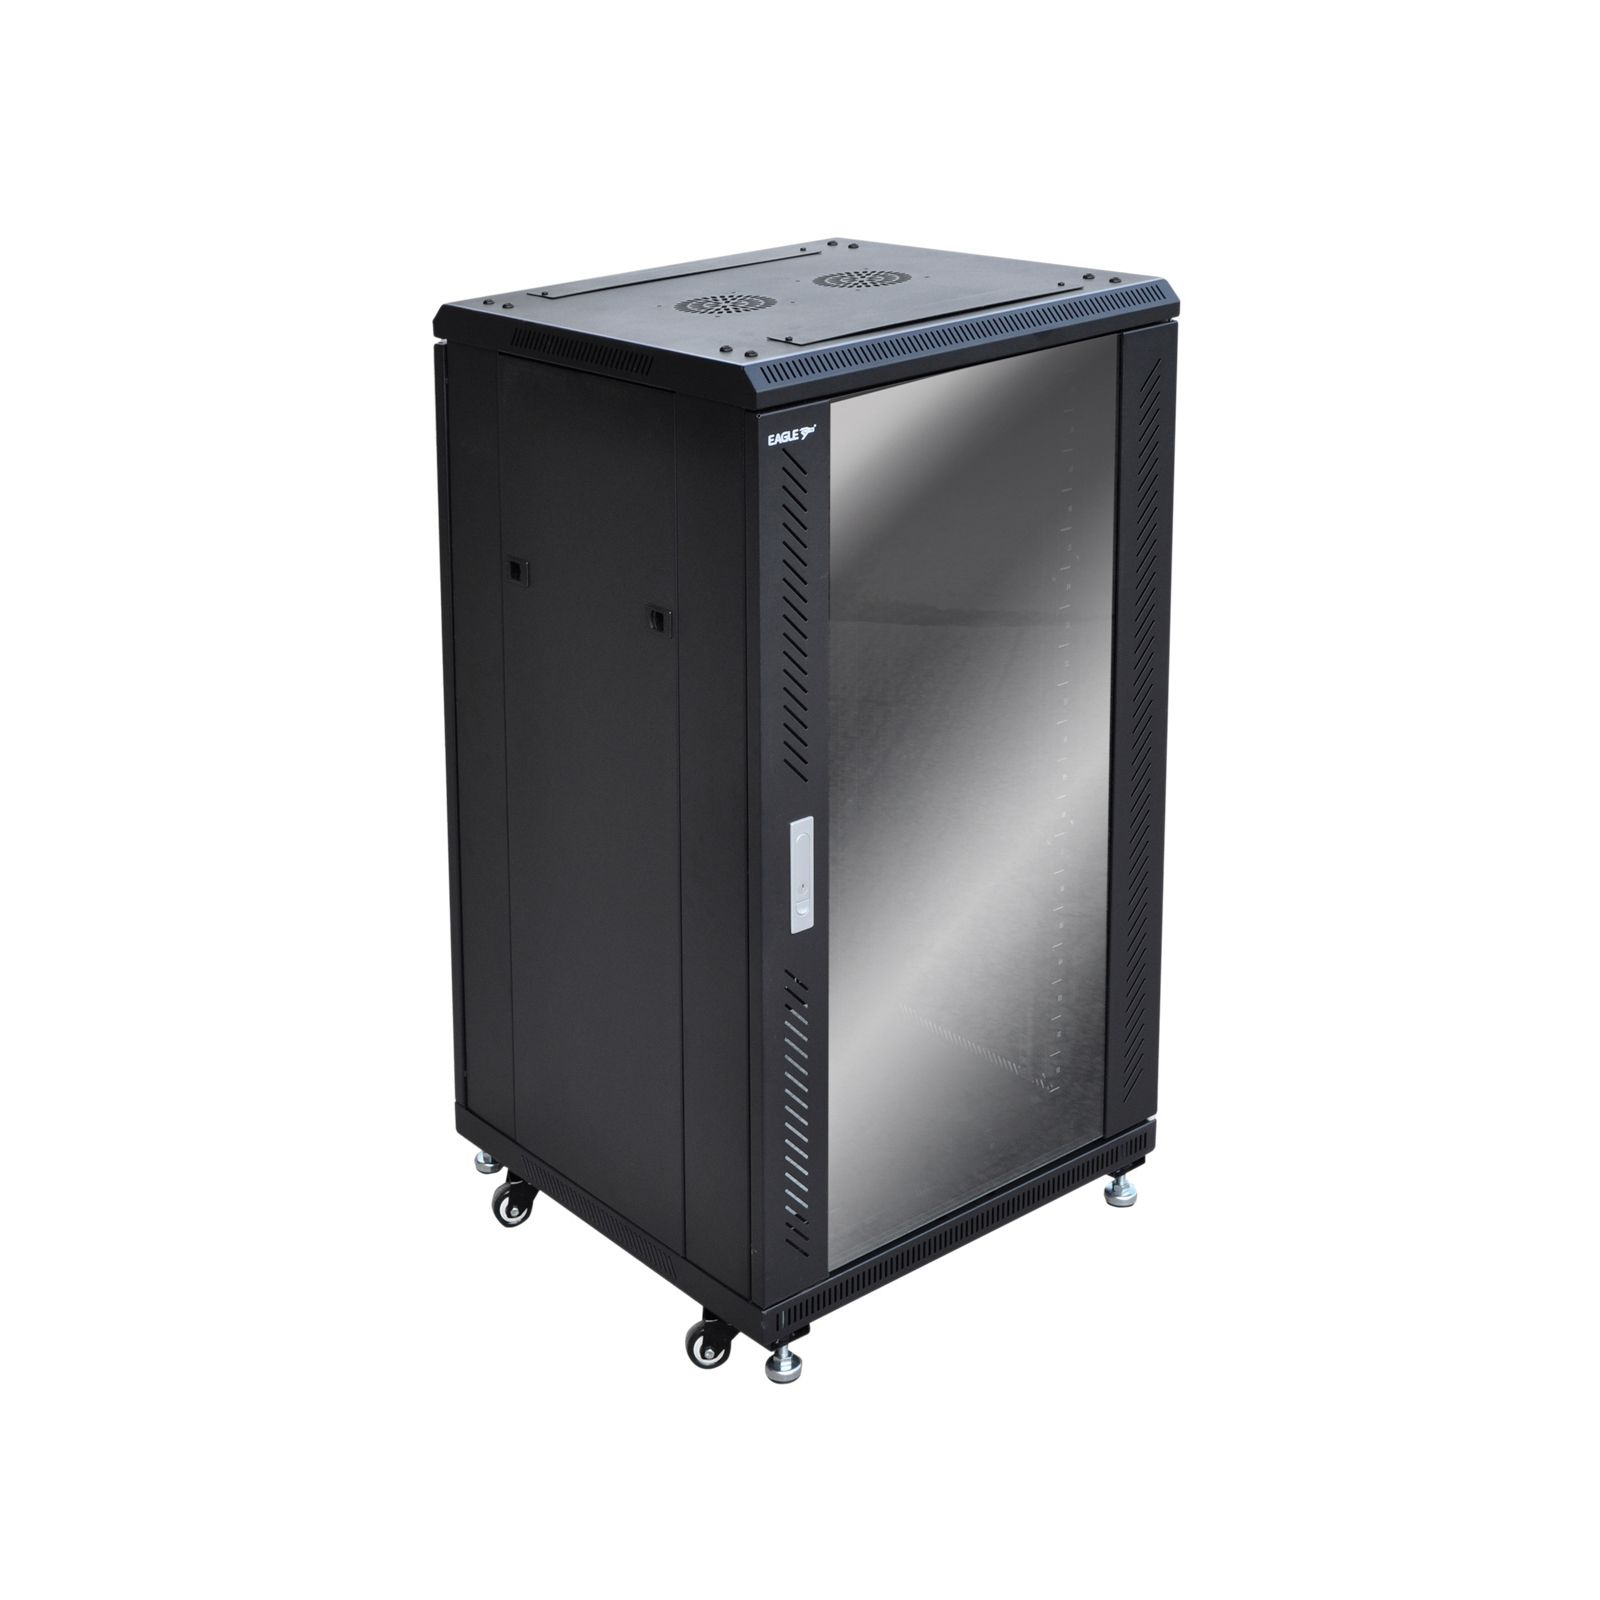 servers accessories network com most it rack amazon dp of standing computers enclosure fit server cabinet free